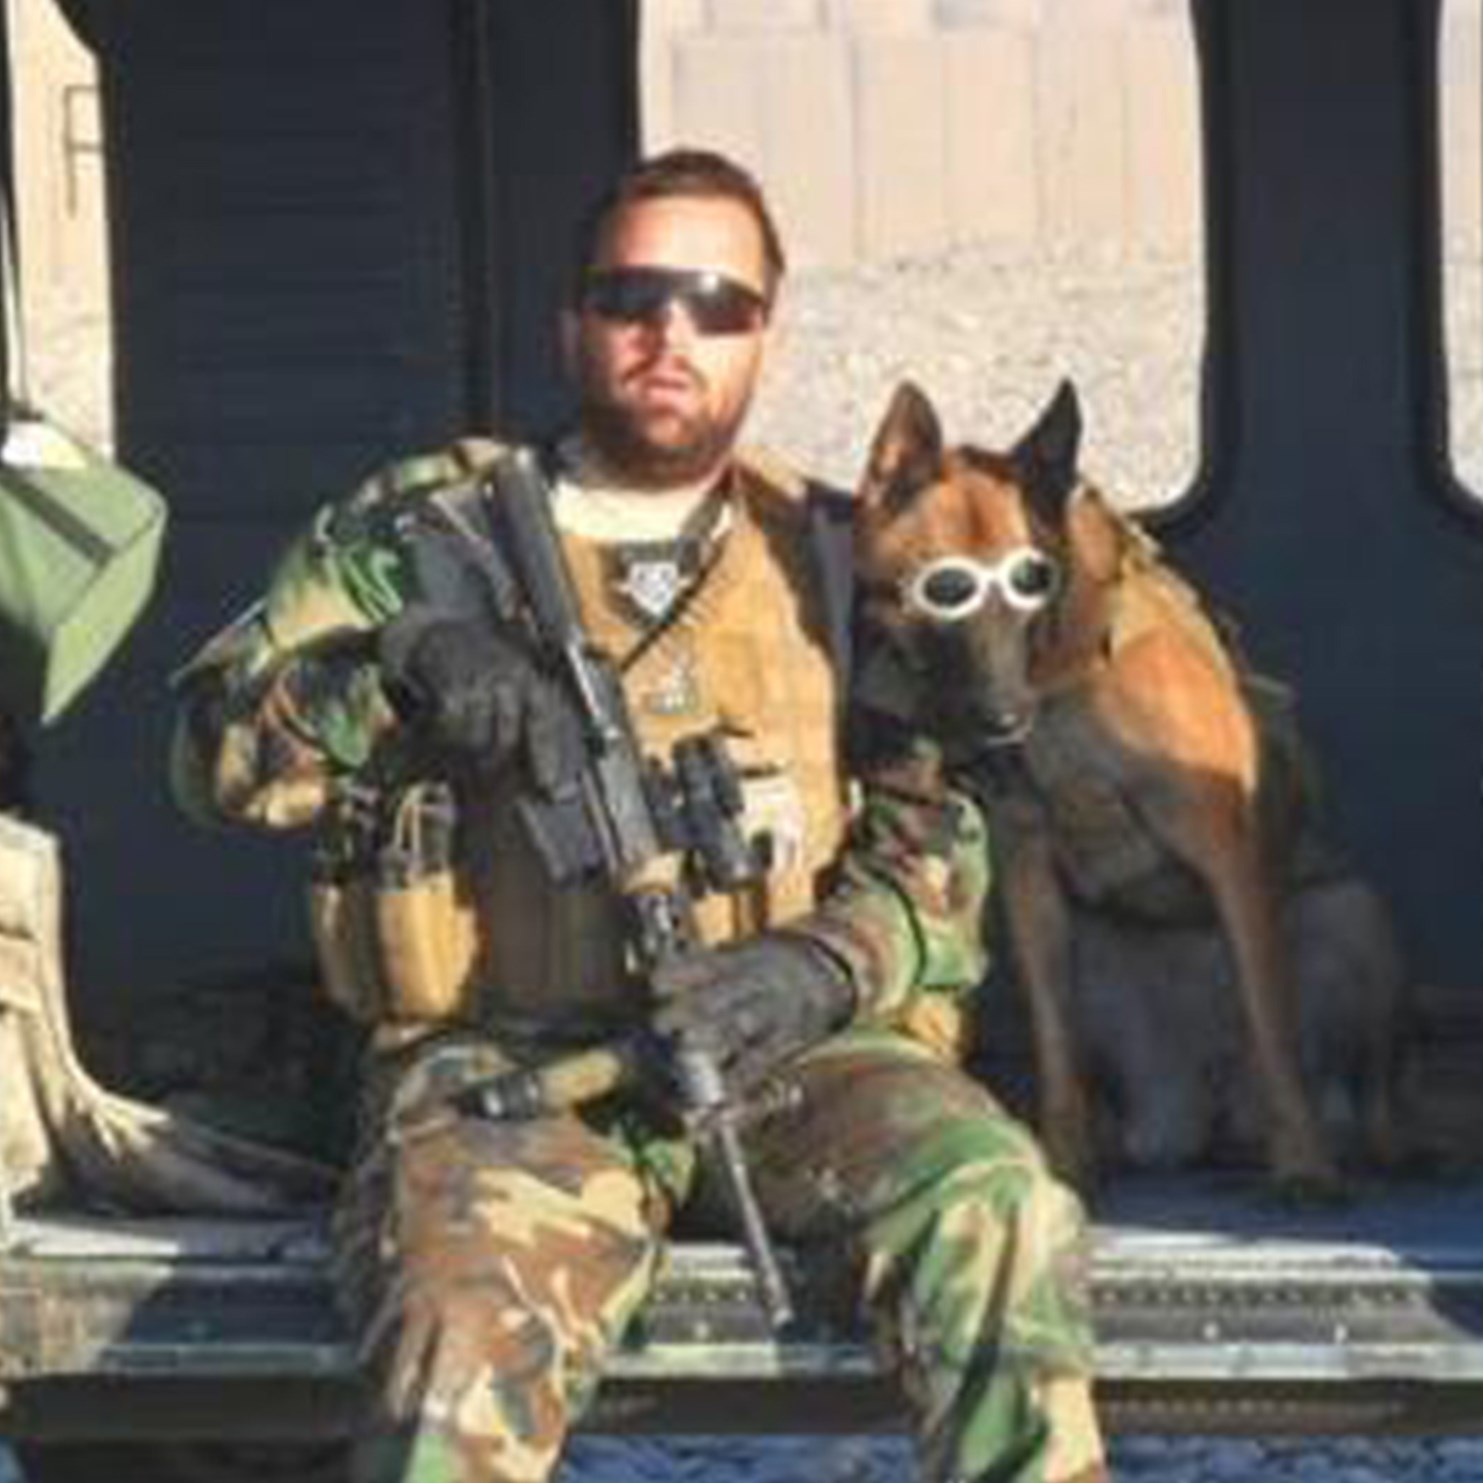 U.S. Army Staff Sgt. James Harrington while on duty overseas with Ryky. The veteran and the Belgian Malnois were reunited after a two-year separation and will participate in New York's Veterans Day parade Tuesday.